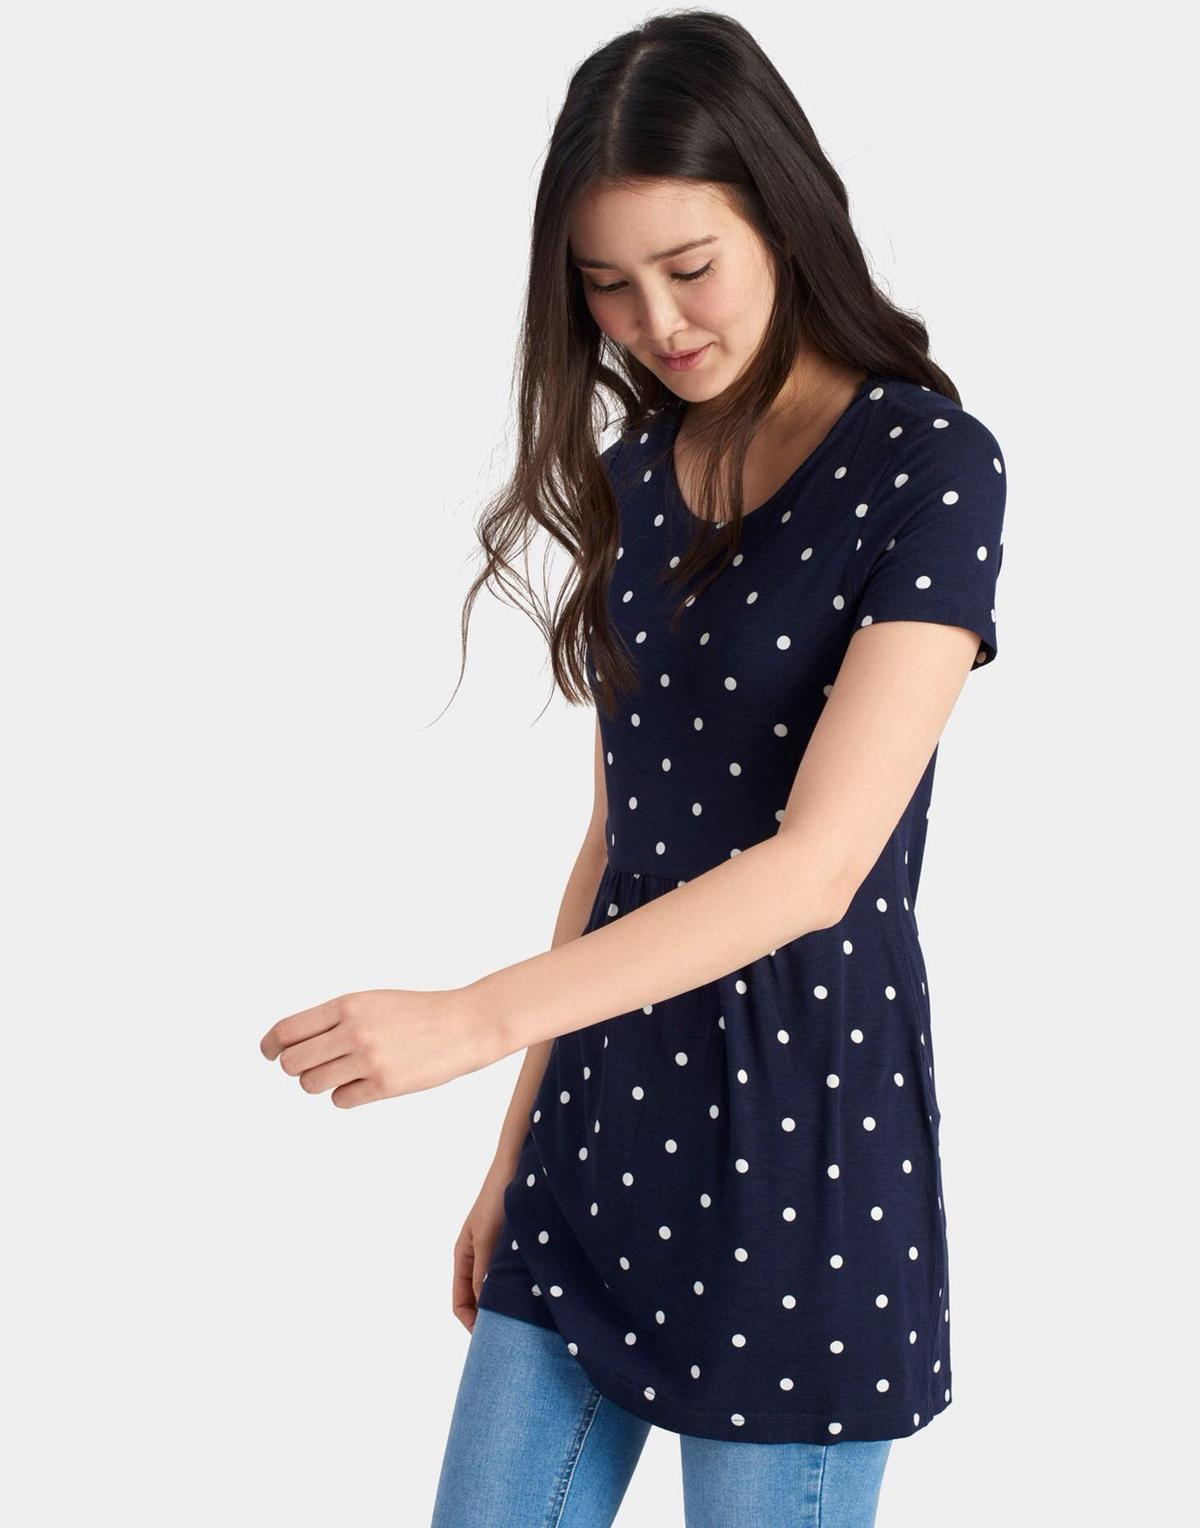 b77c3a8a980 Joules Tunic Dress (Madison) in BS9 Bristol for £20.00 for sale - Shpock